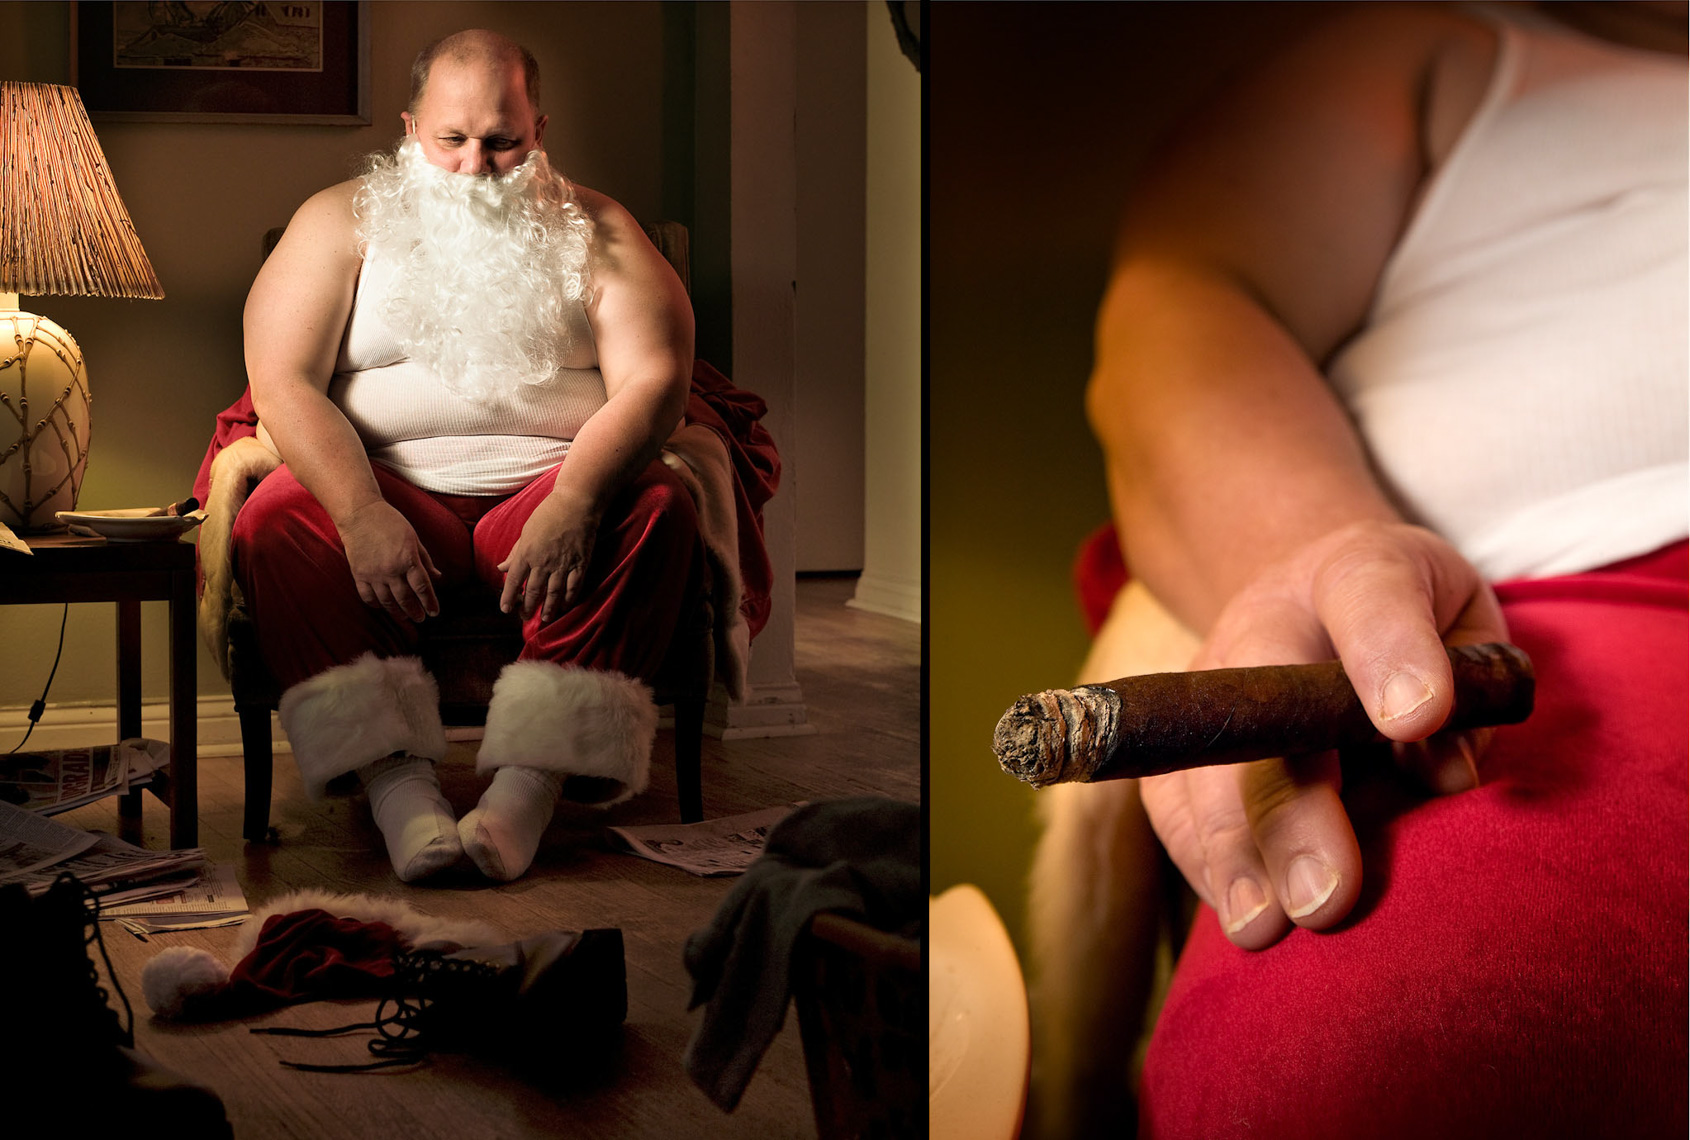 080326-044.drn Real Santa portrait, shot by Steven P. Widoff, editorial, lifestyle and advertising commercial photographer in Tampa, Florida.